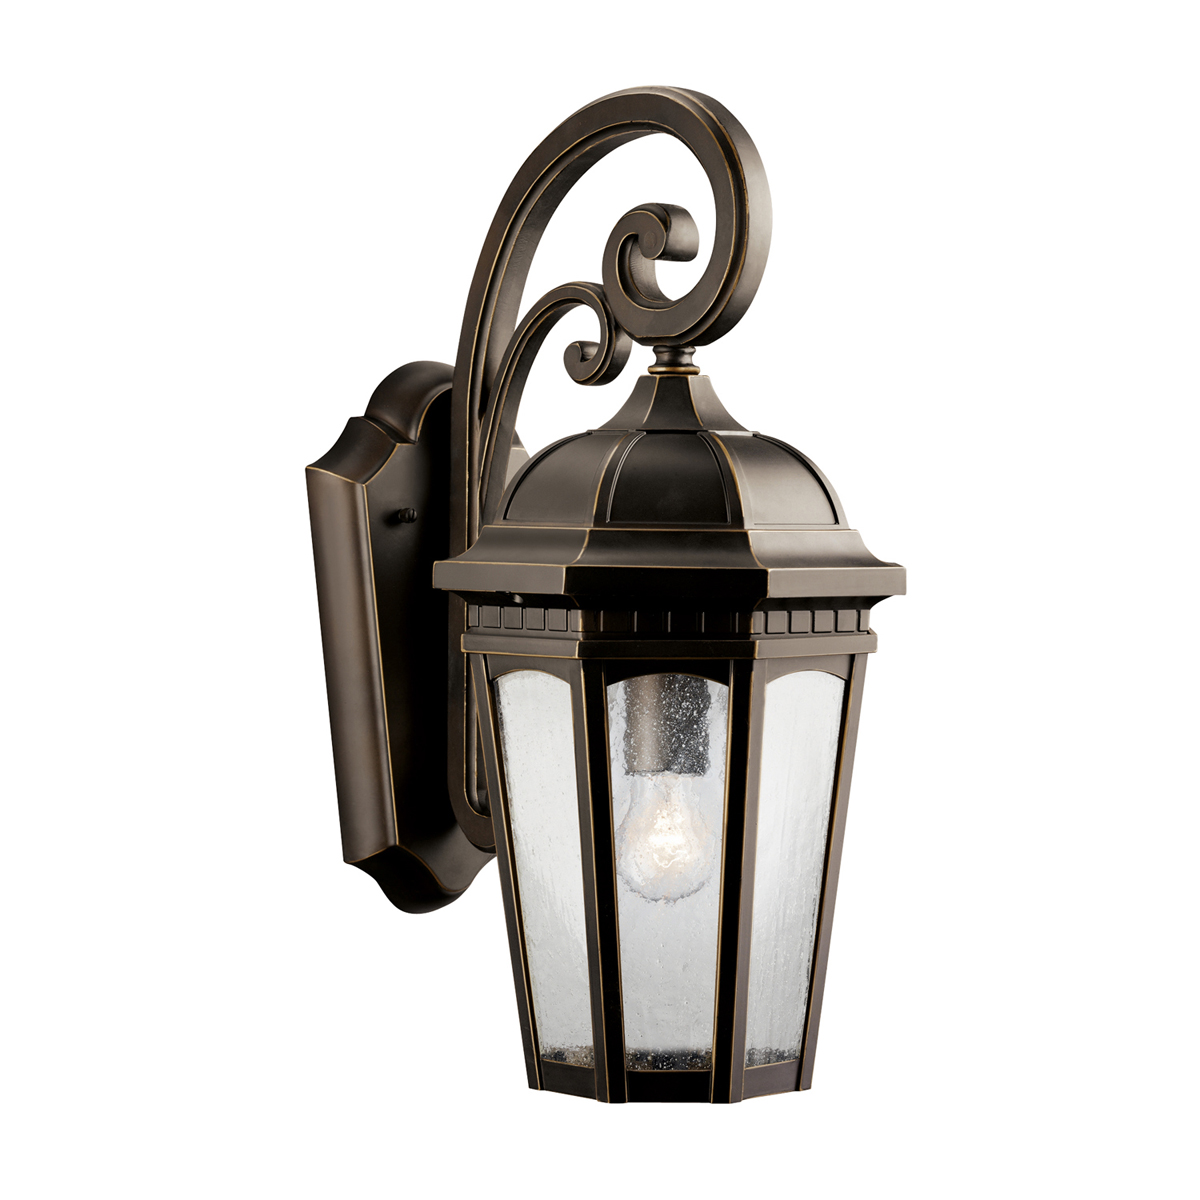 Kichler Lighting (9033RZ) Courtyard 1-Light Medium Outdoor Wall Sconce in Rubbed Bronze